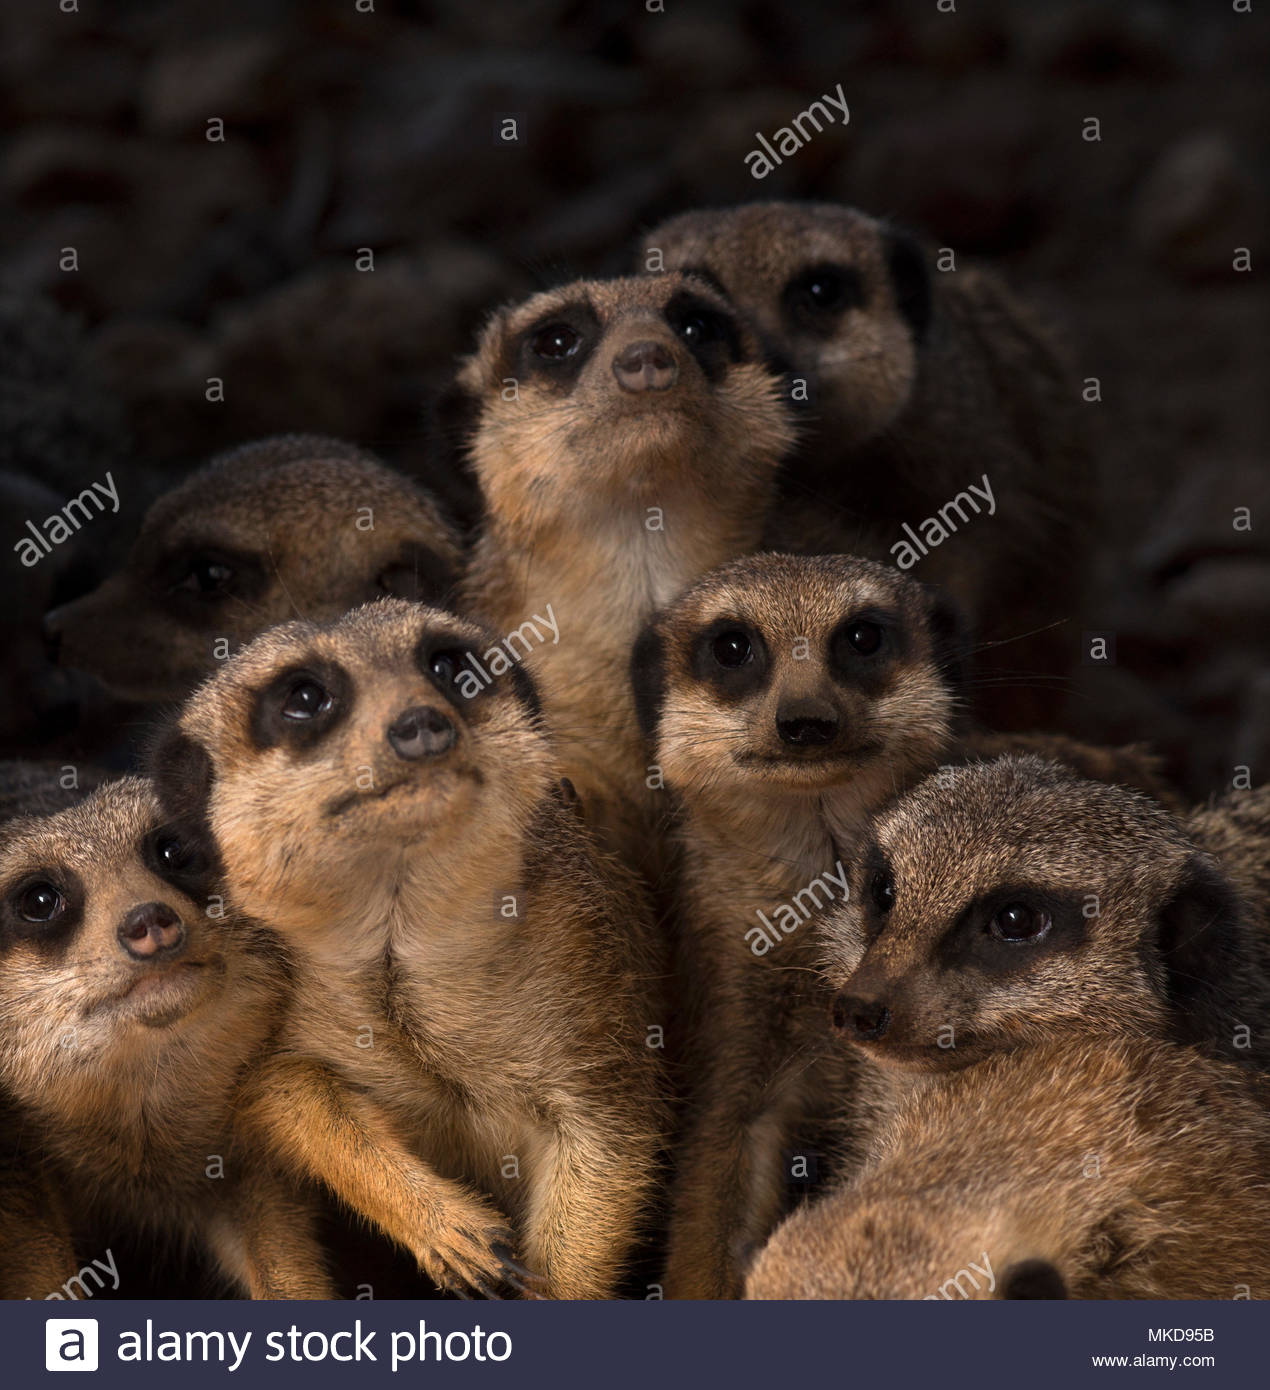 Close-up of a mob of Meerkats, (Suricata suricatta) Mulhouse Zoological and Botanical Park, France - Stock Image